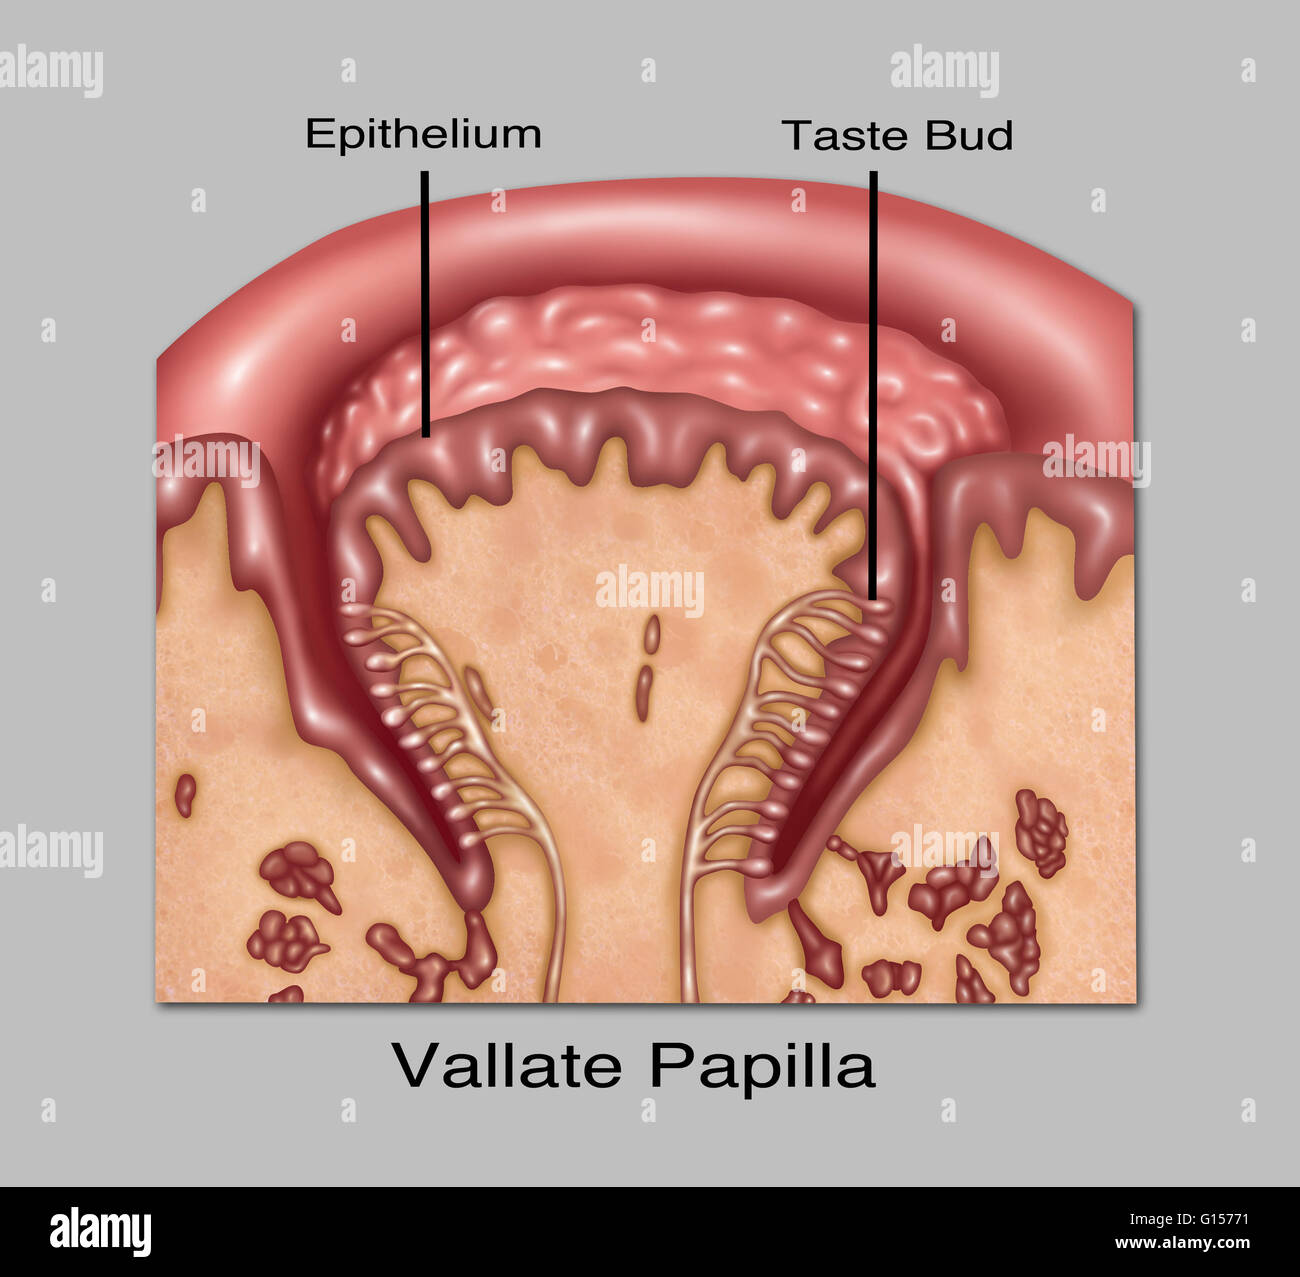 illustration of circumvallate or vallate papillae one